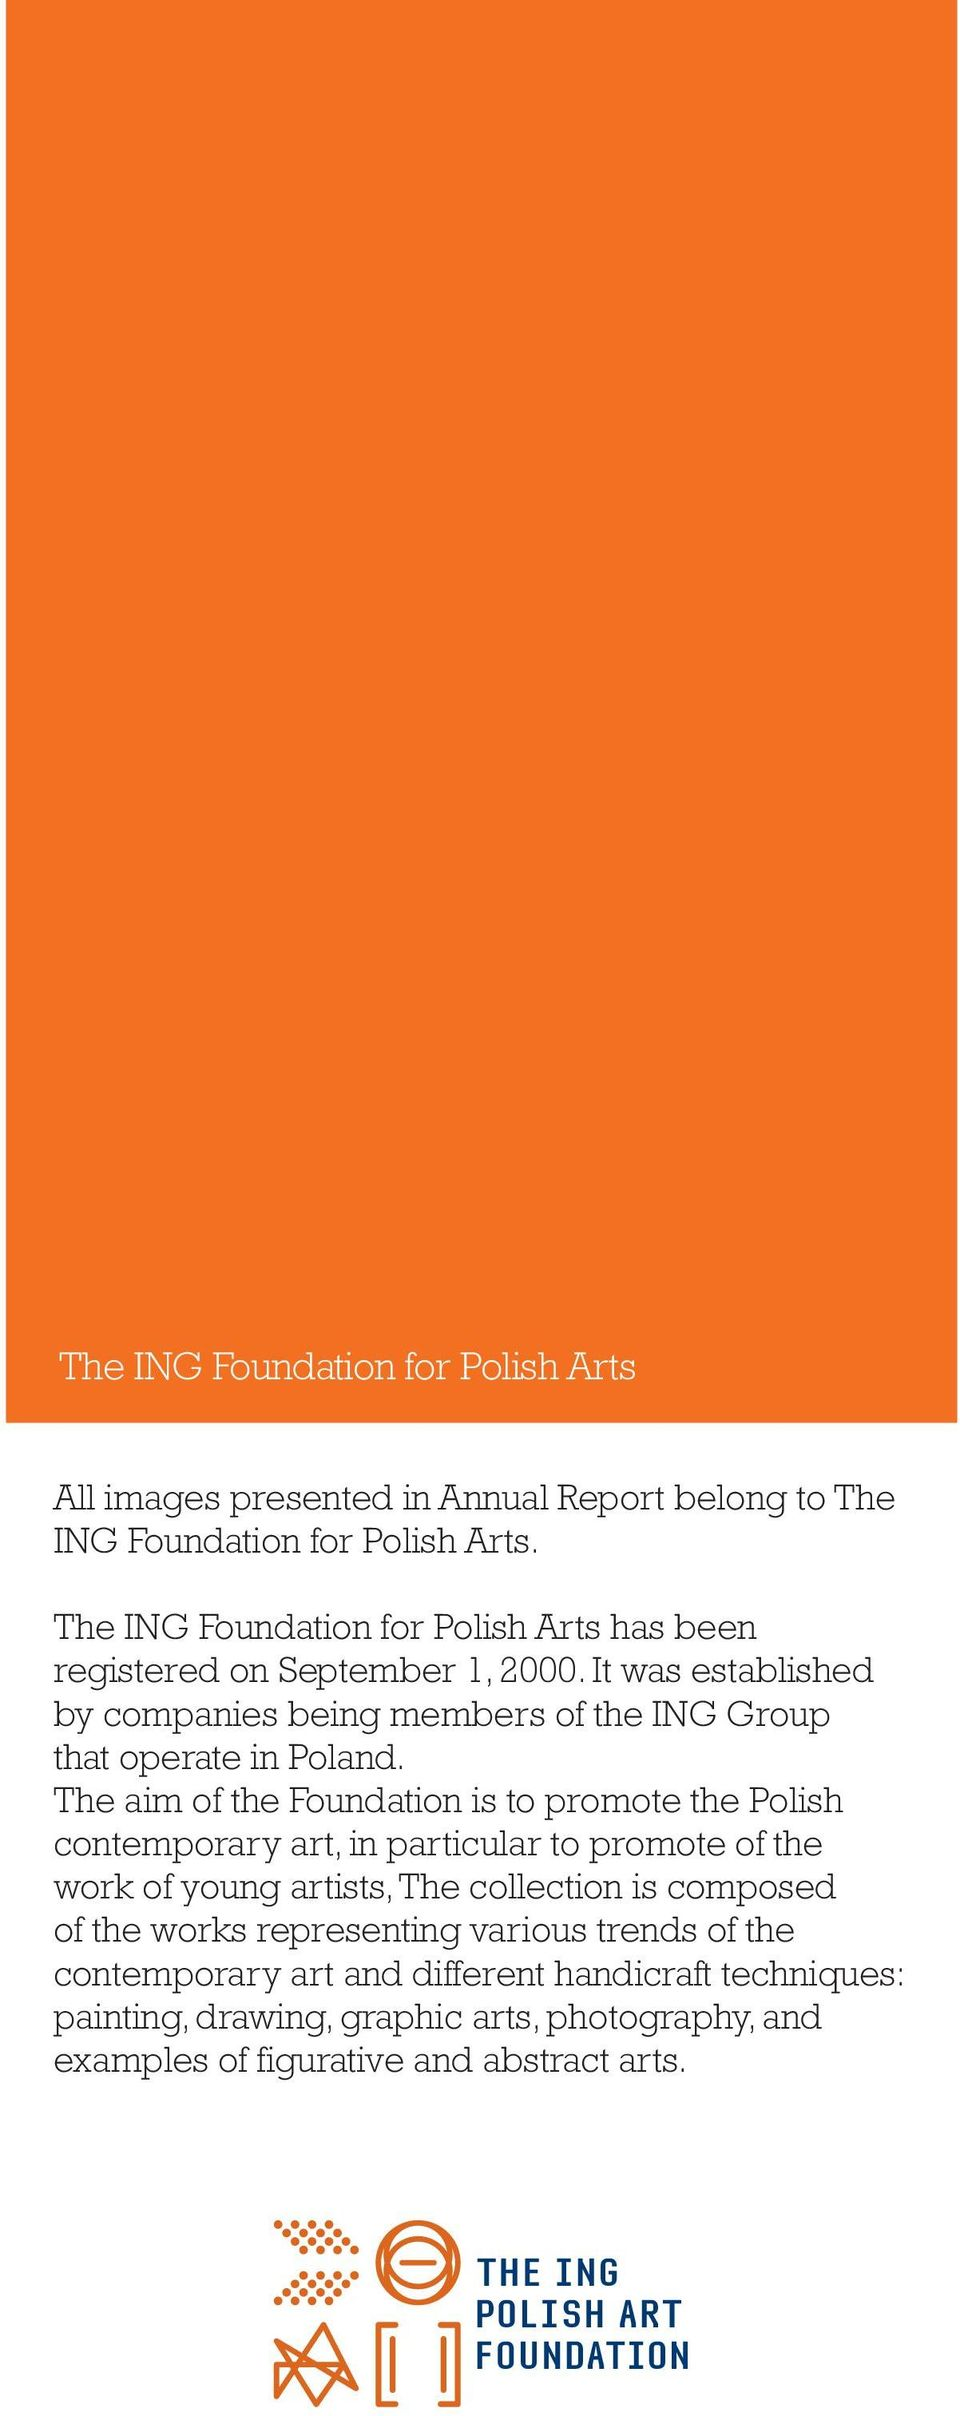 It was established by companies being members of the ING Group that operate in Poland.